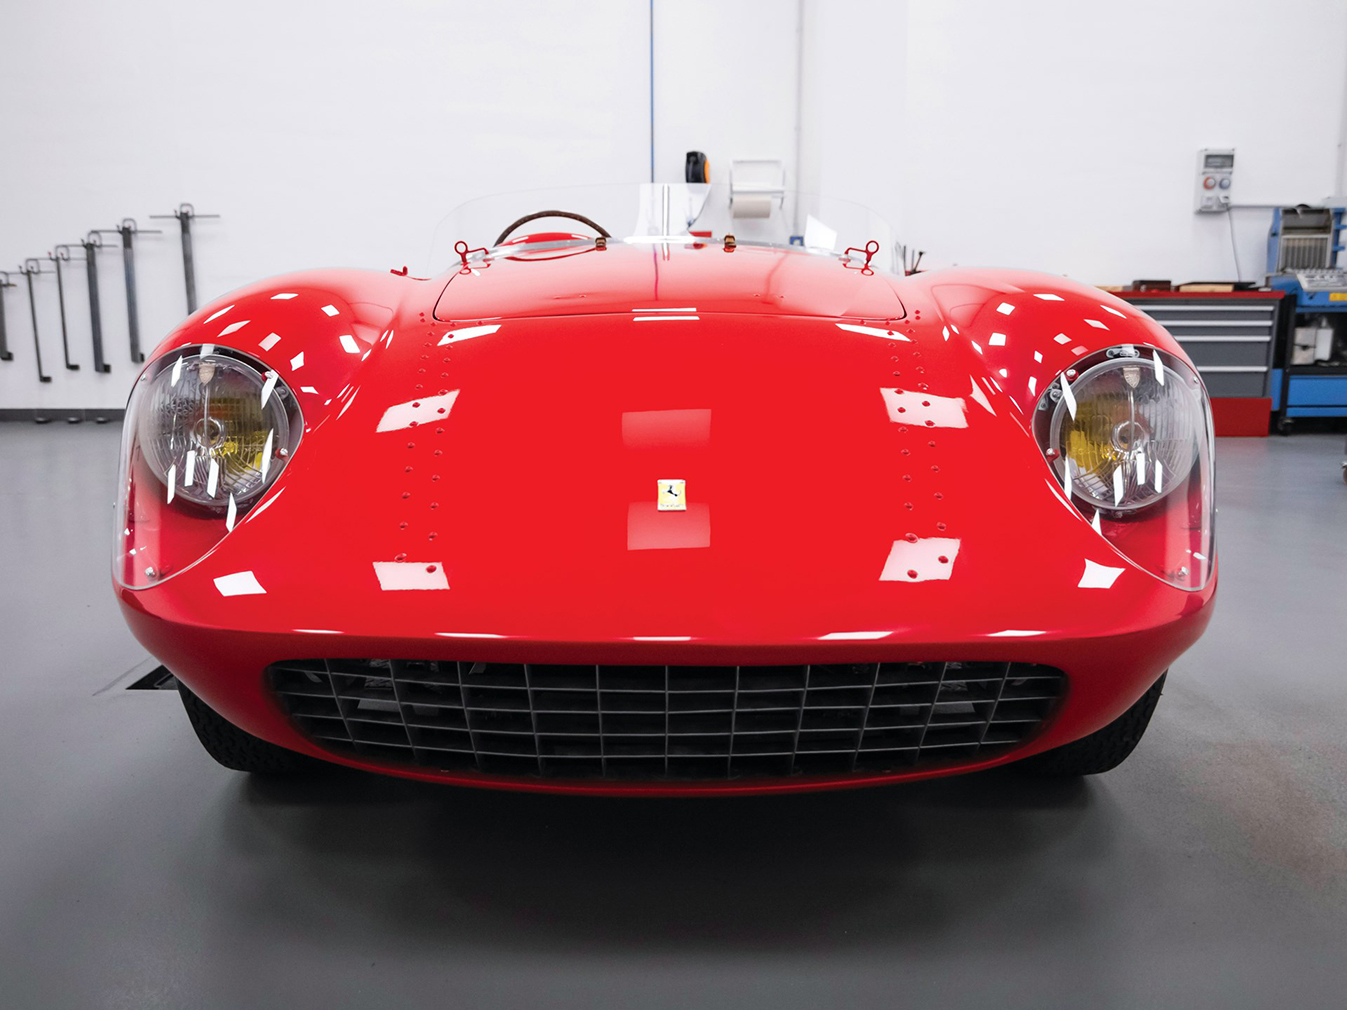 Ultra-rare Ferrari 500 Mondial Spider by Pininfarina is up for auction